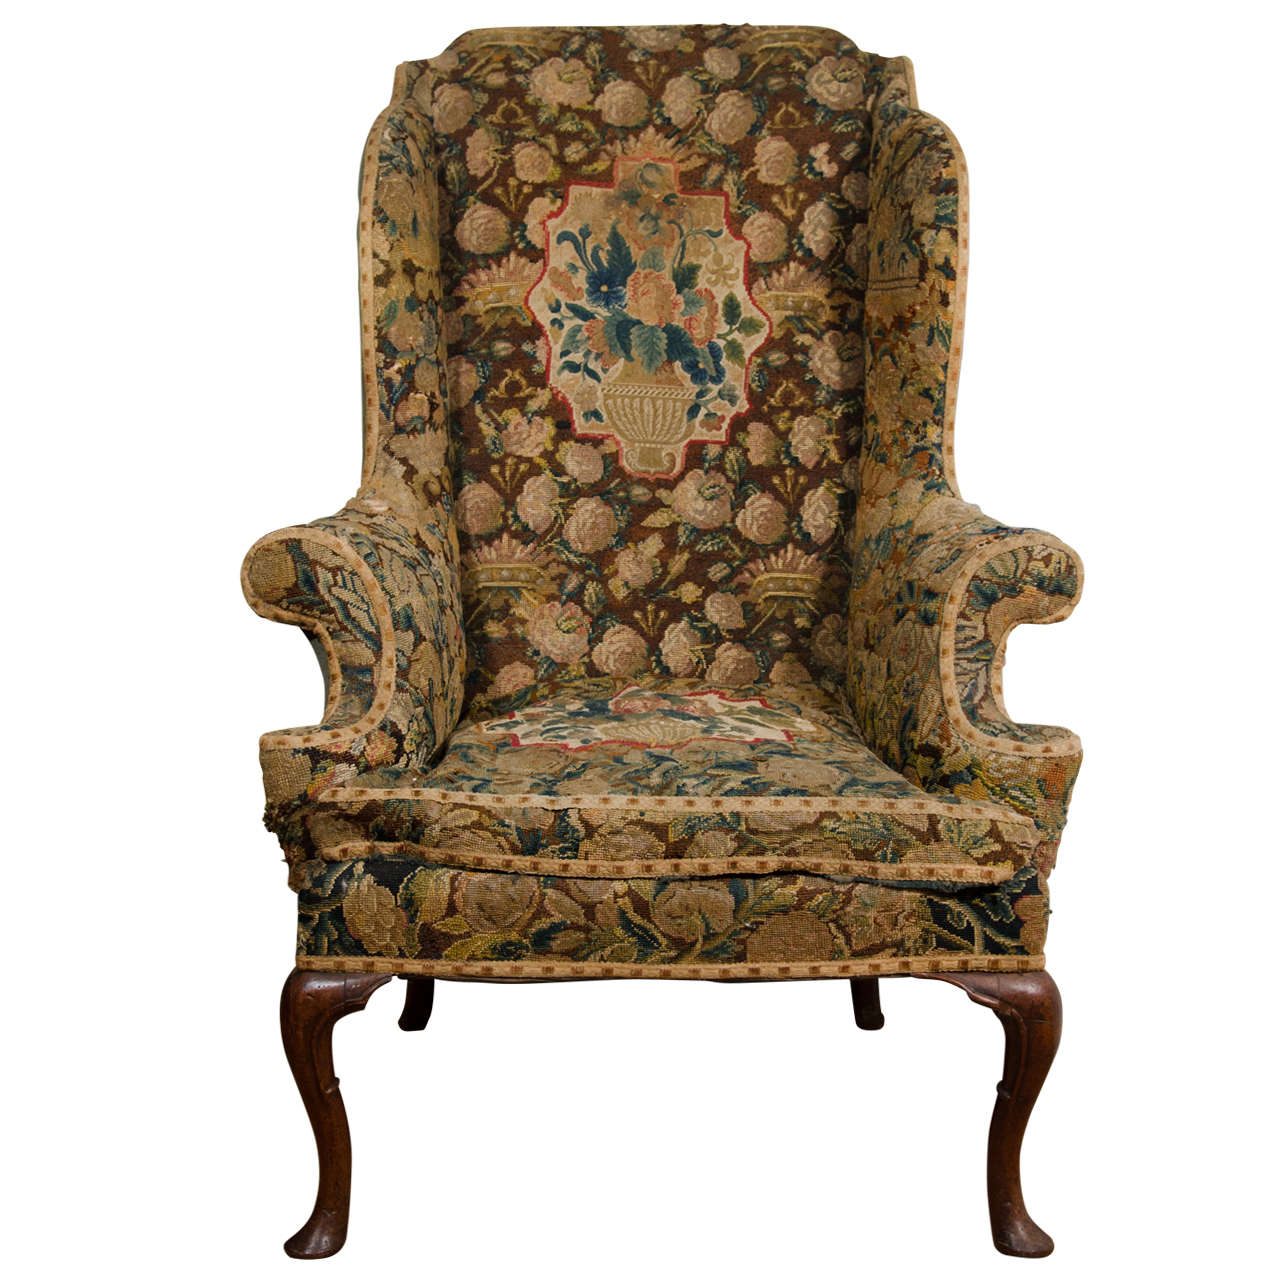 country style wingback chairs mid century upholstered dining english queen anne walnut wing chair at 1stdibs